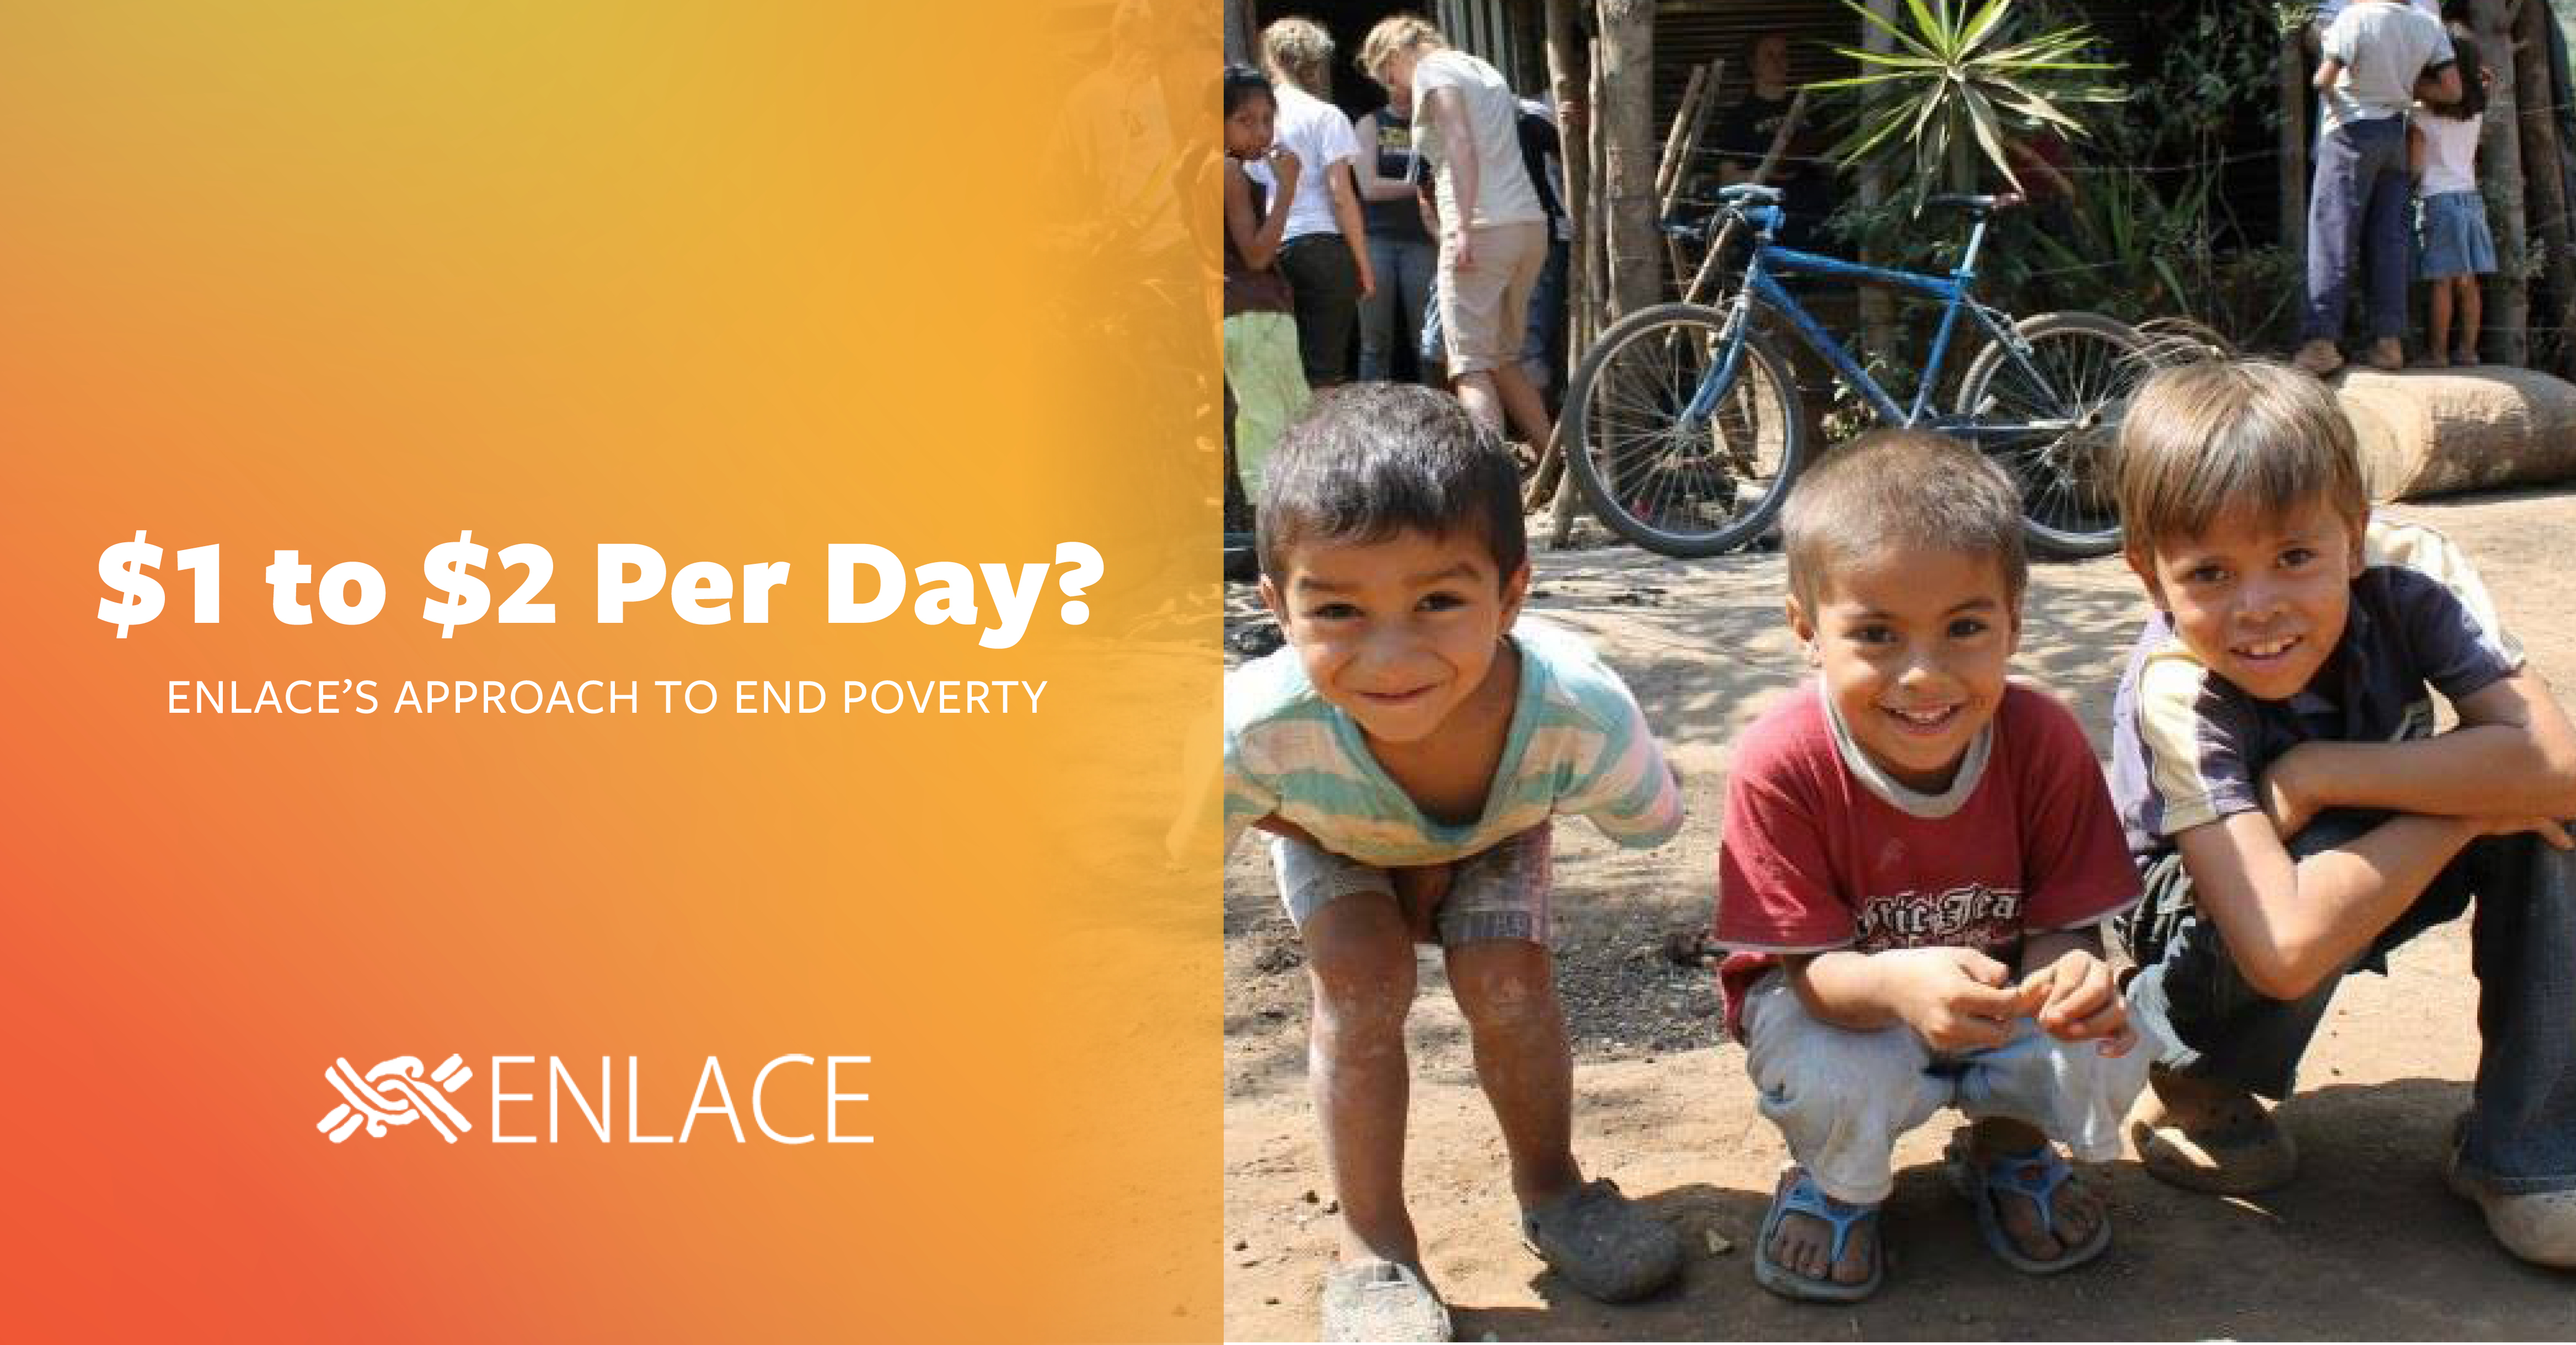 $1 to $2 Per Day? Enlace's Approach to End Poverty